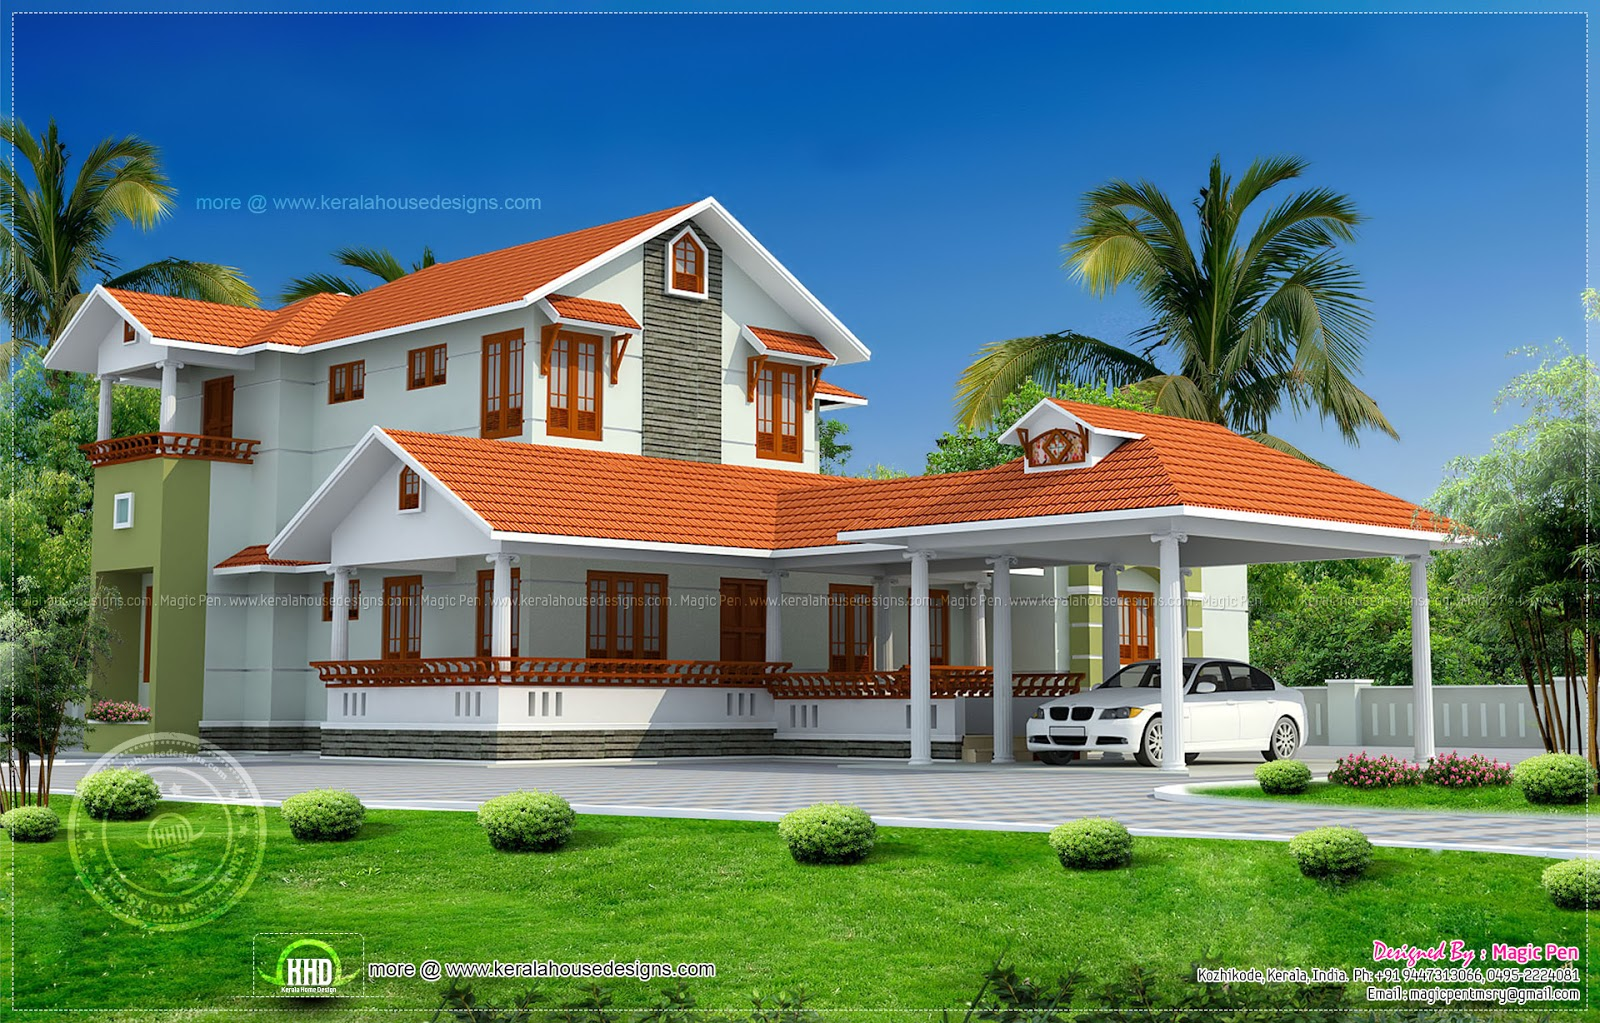 Kerala model double storied house kerala home design and for Kerala house models photos